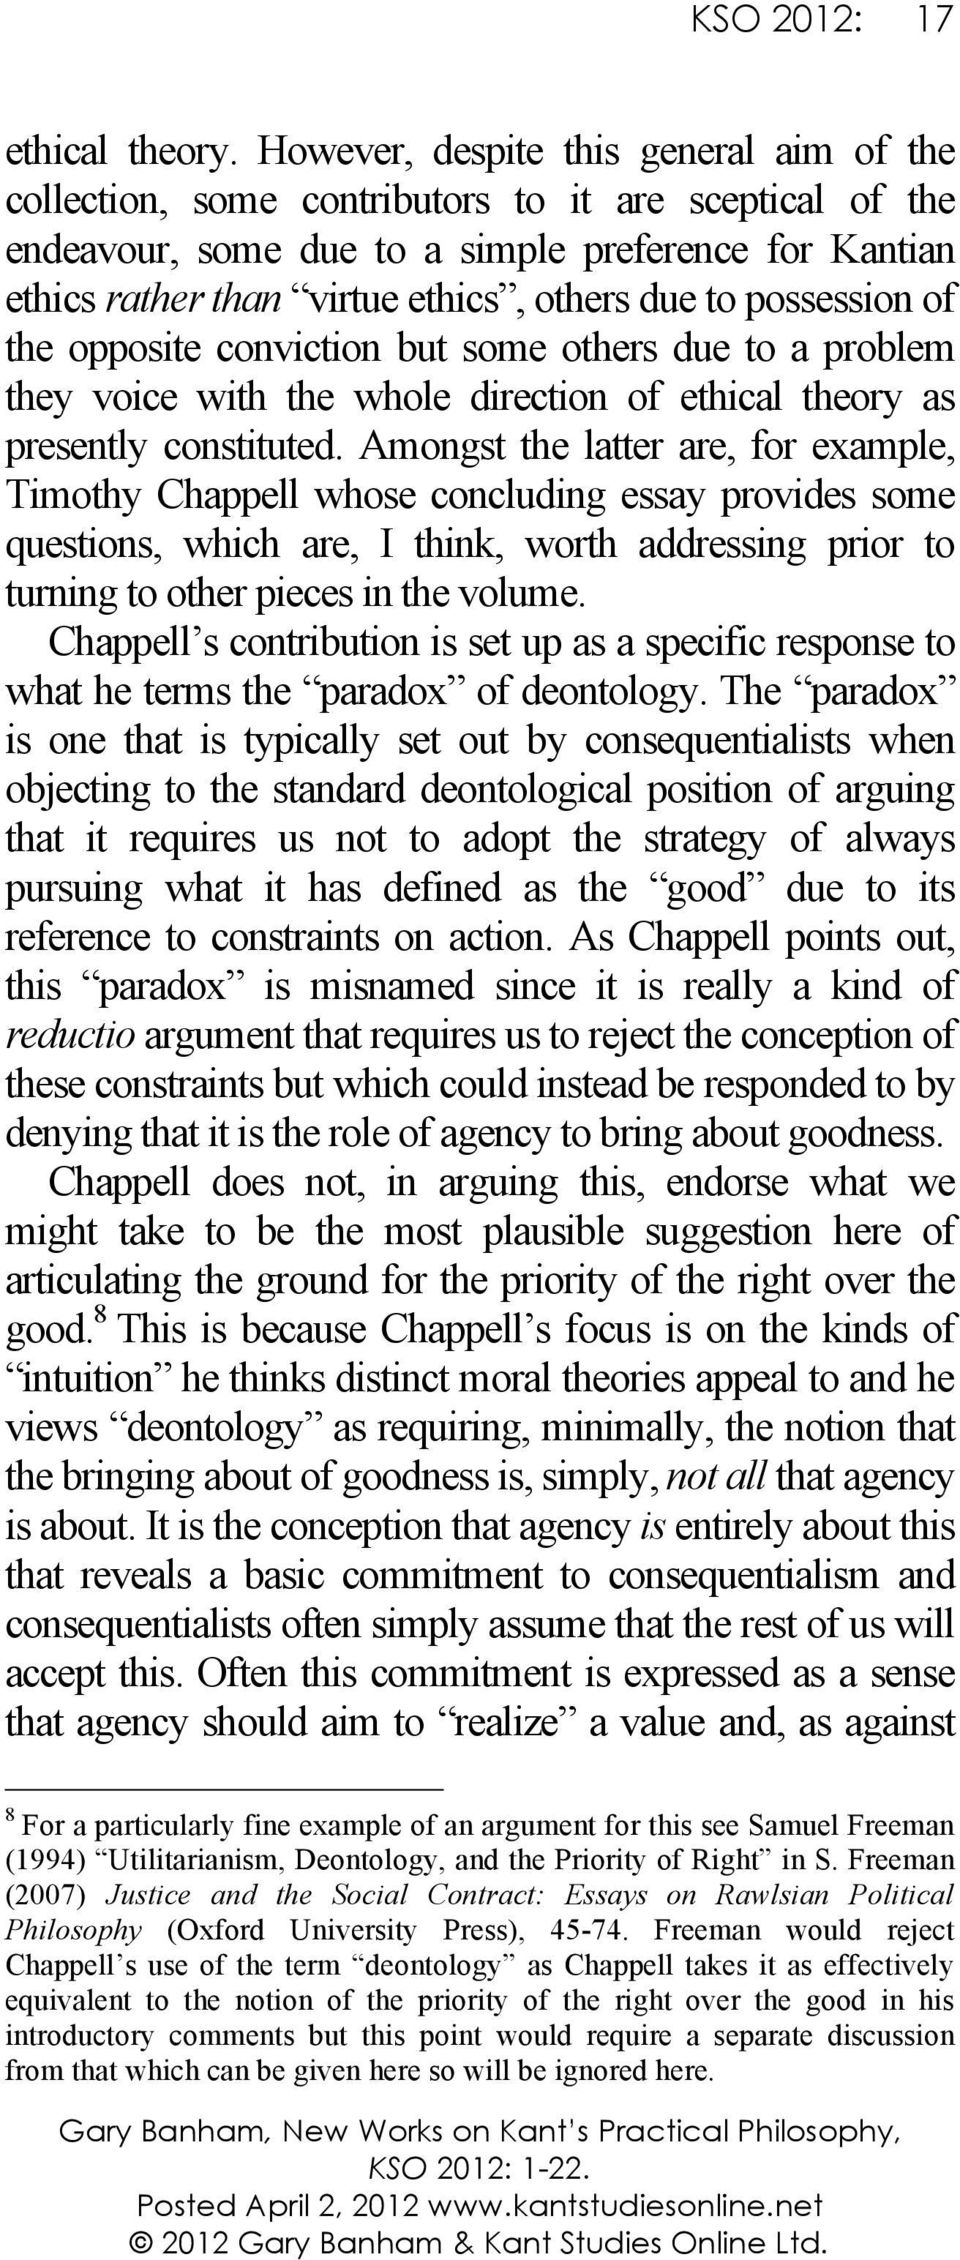 kant theory and justice essay Kant's just war theory brian orend kant is often cited as one of the first truly international political philosophers  nearly every commentator on kant's international theory of justice who dis-  by t humphrey in his ed lmmanael kant: perpetual peace and other essays (indianapolis, i n: hackett, 1983), 58 (p 121 ) war as the source.